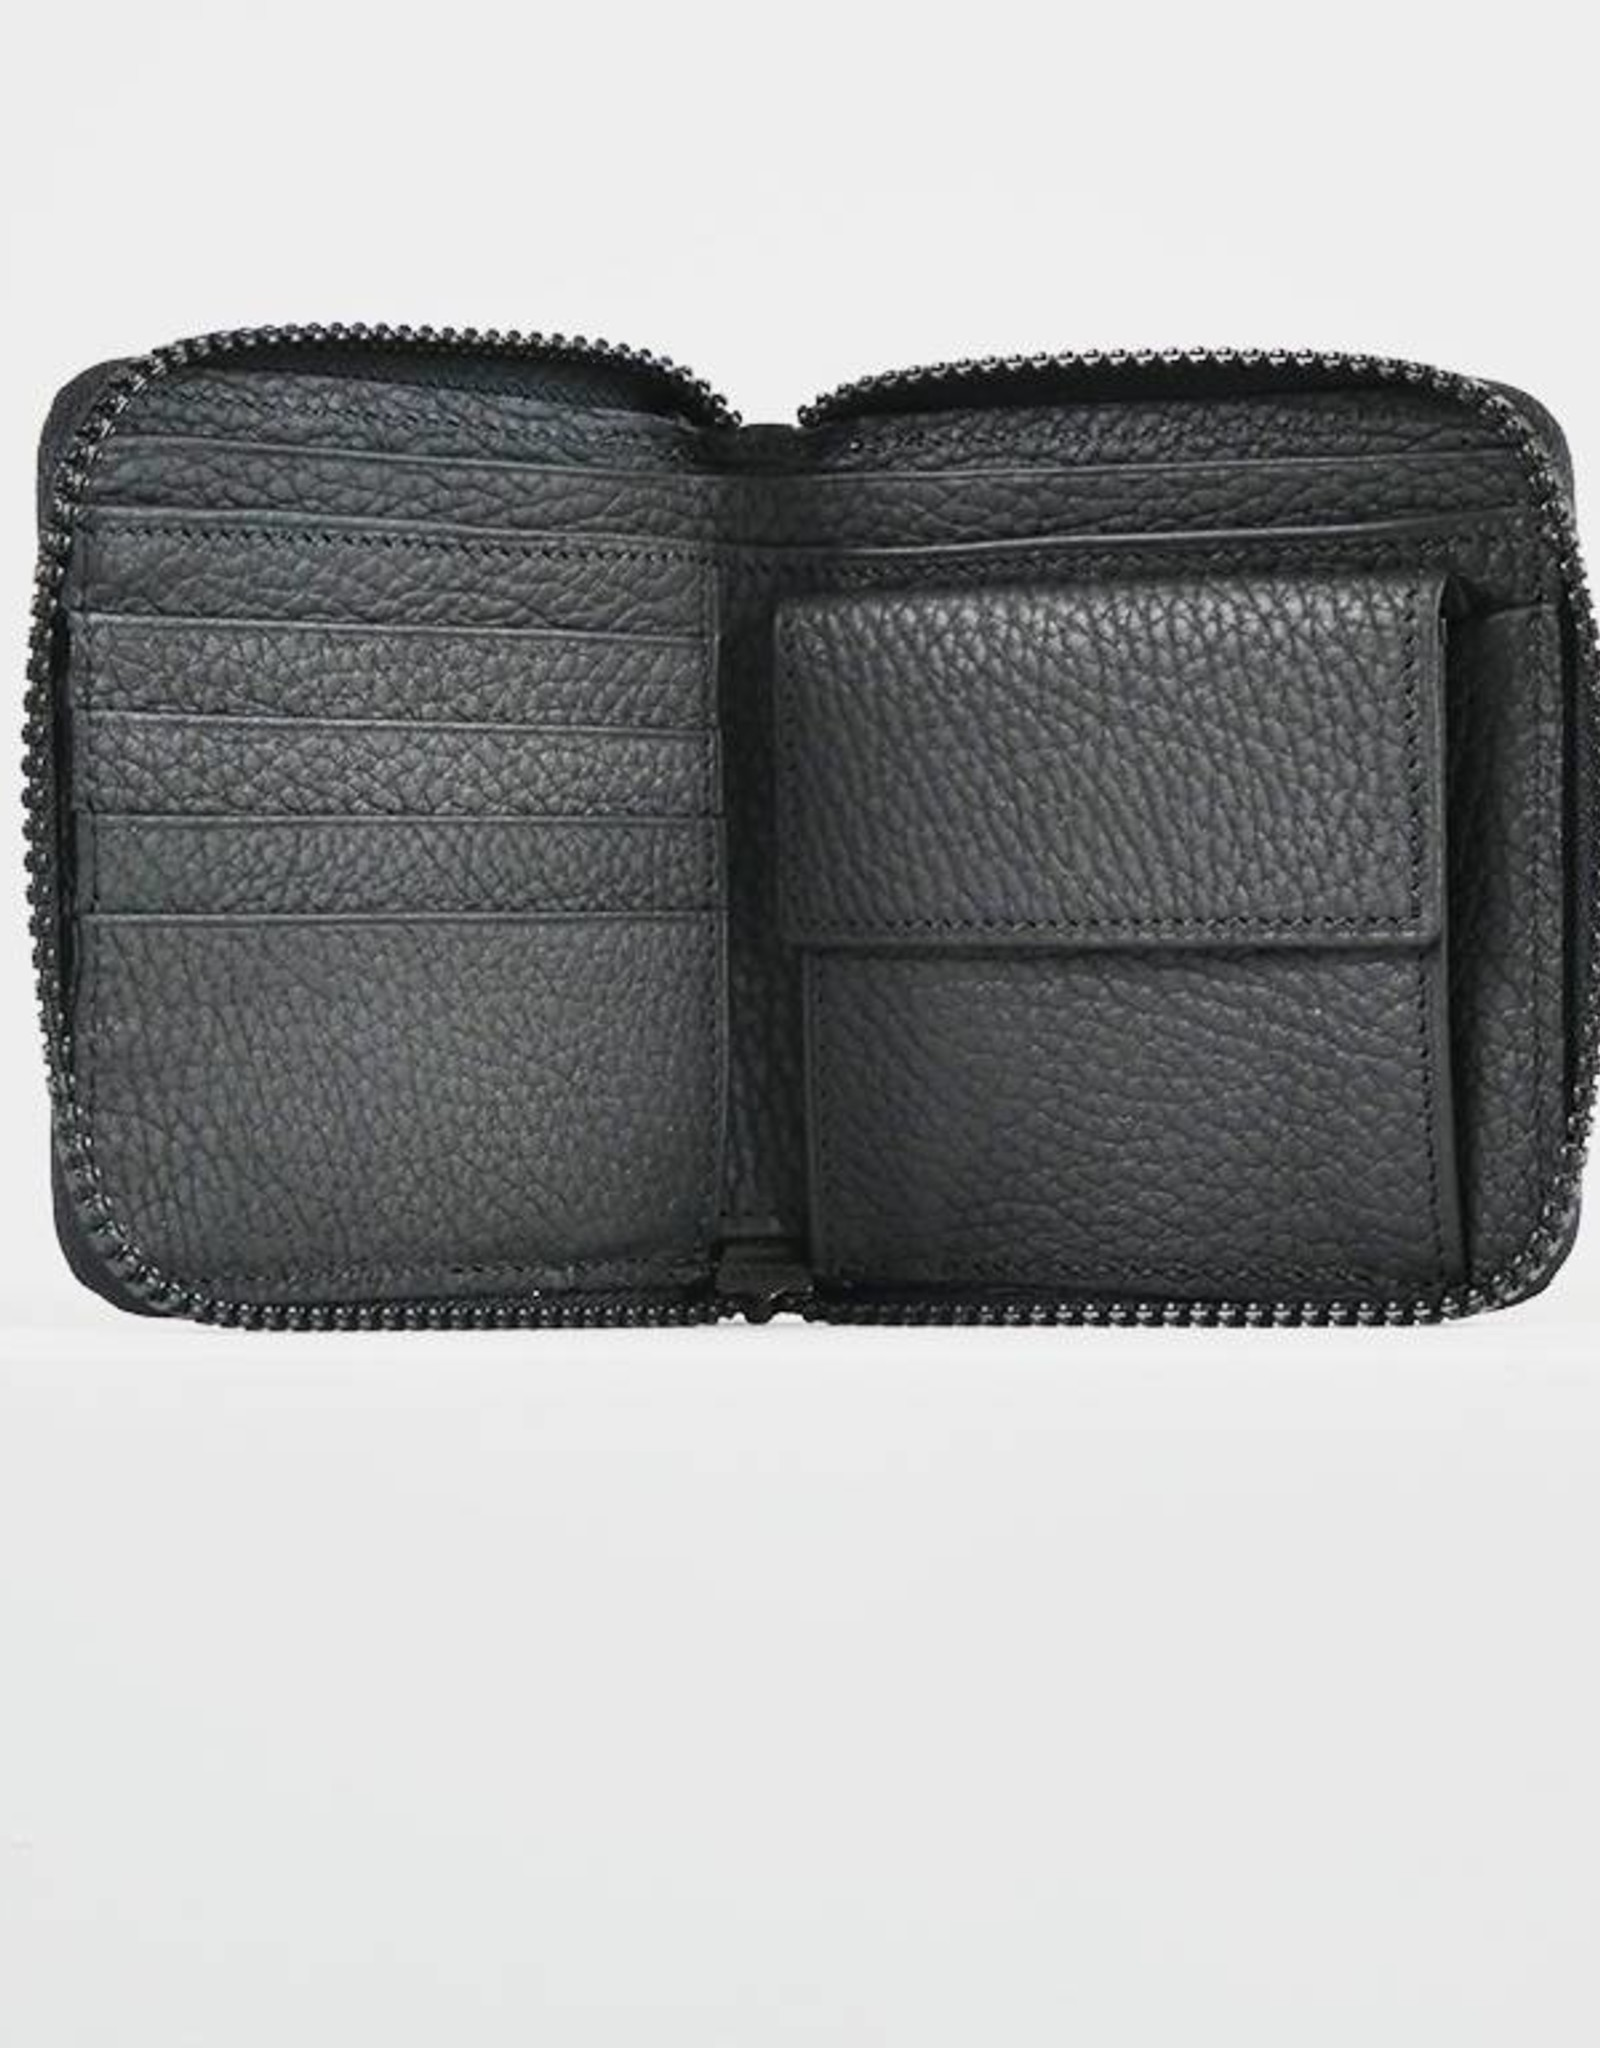 SMALL ZIPPED WALLET BLACK